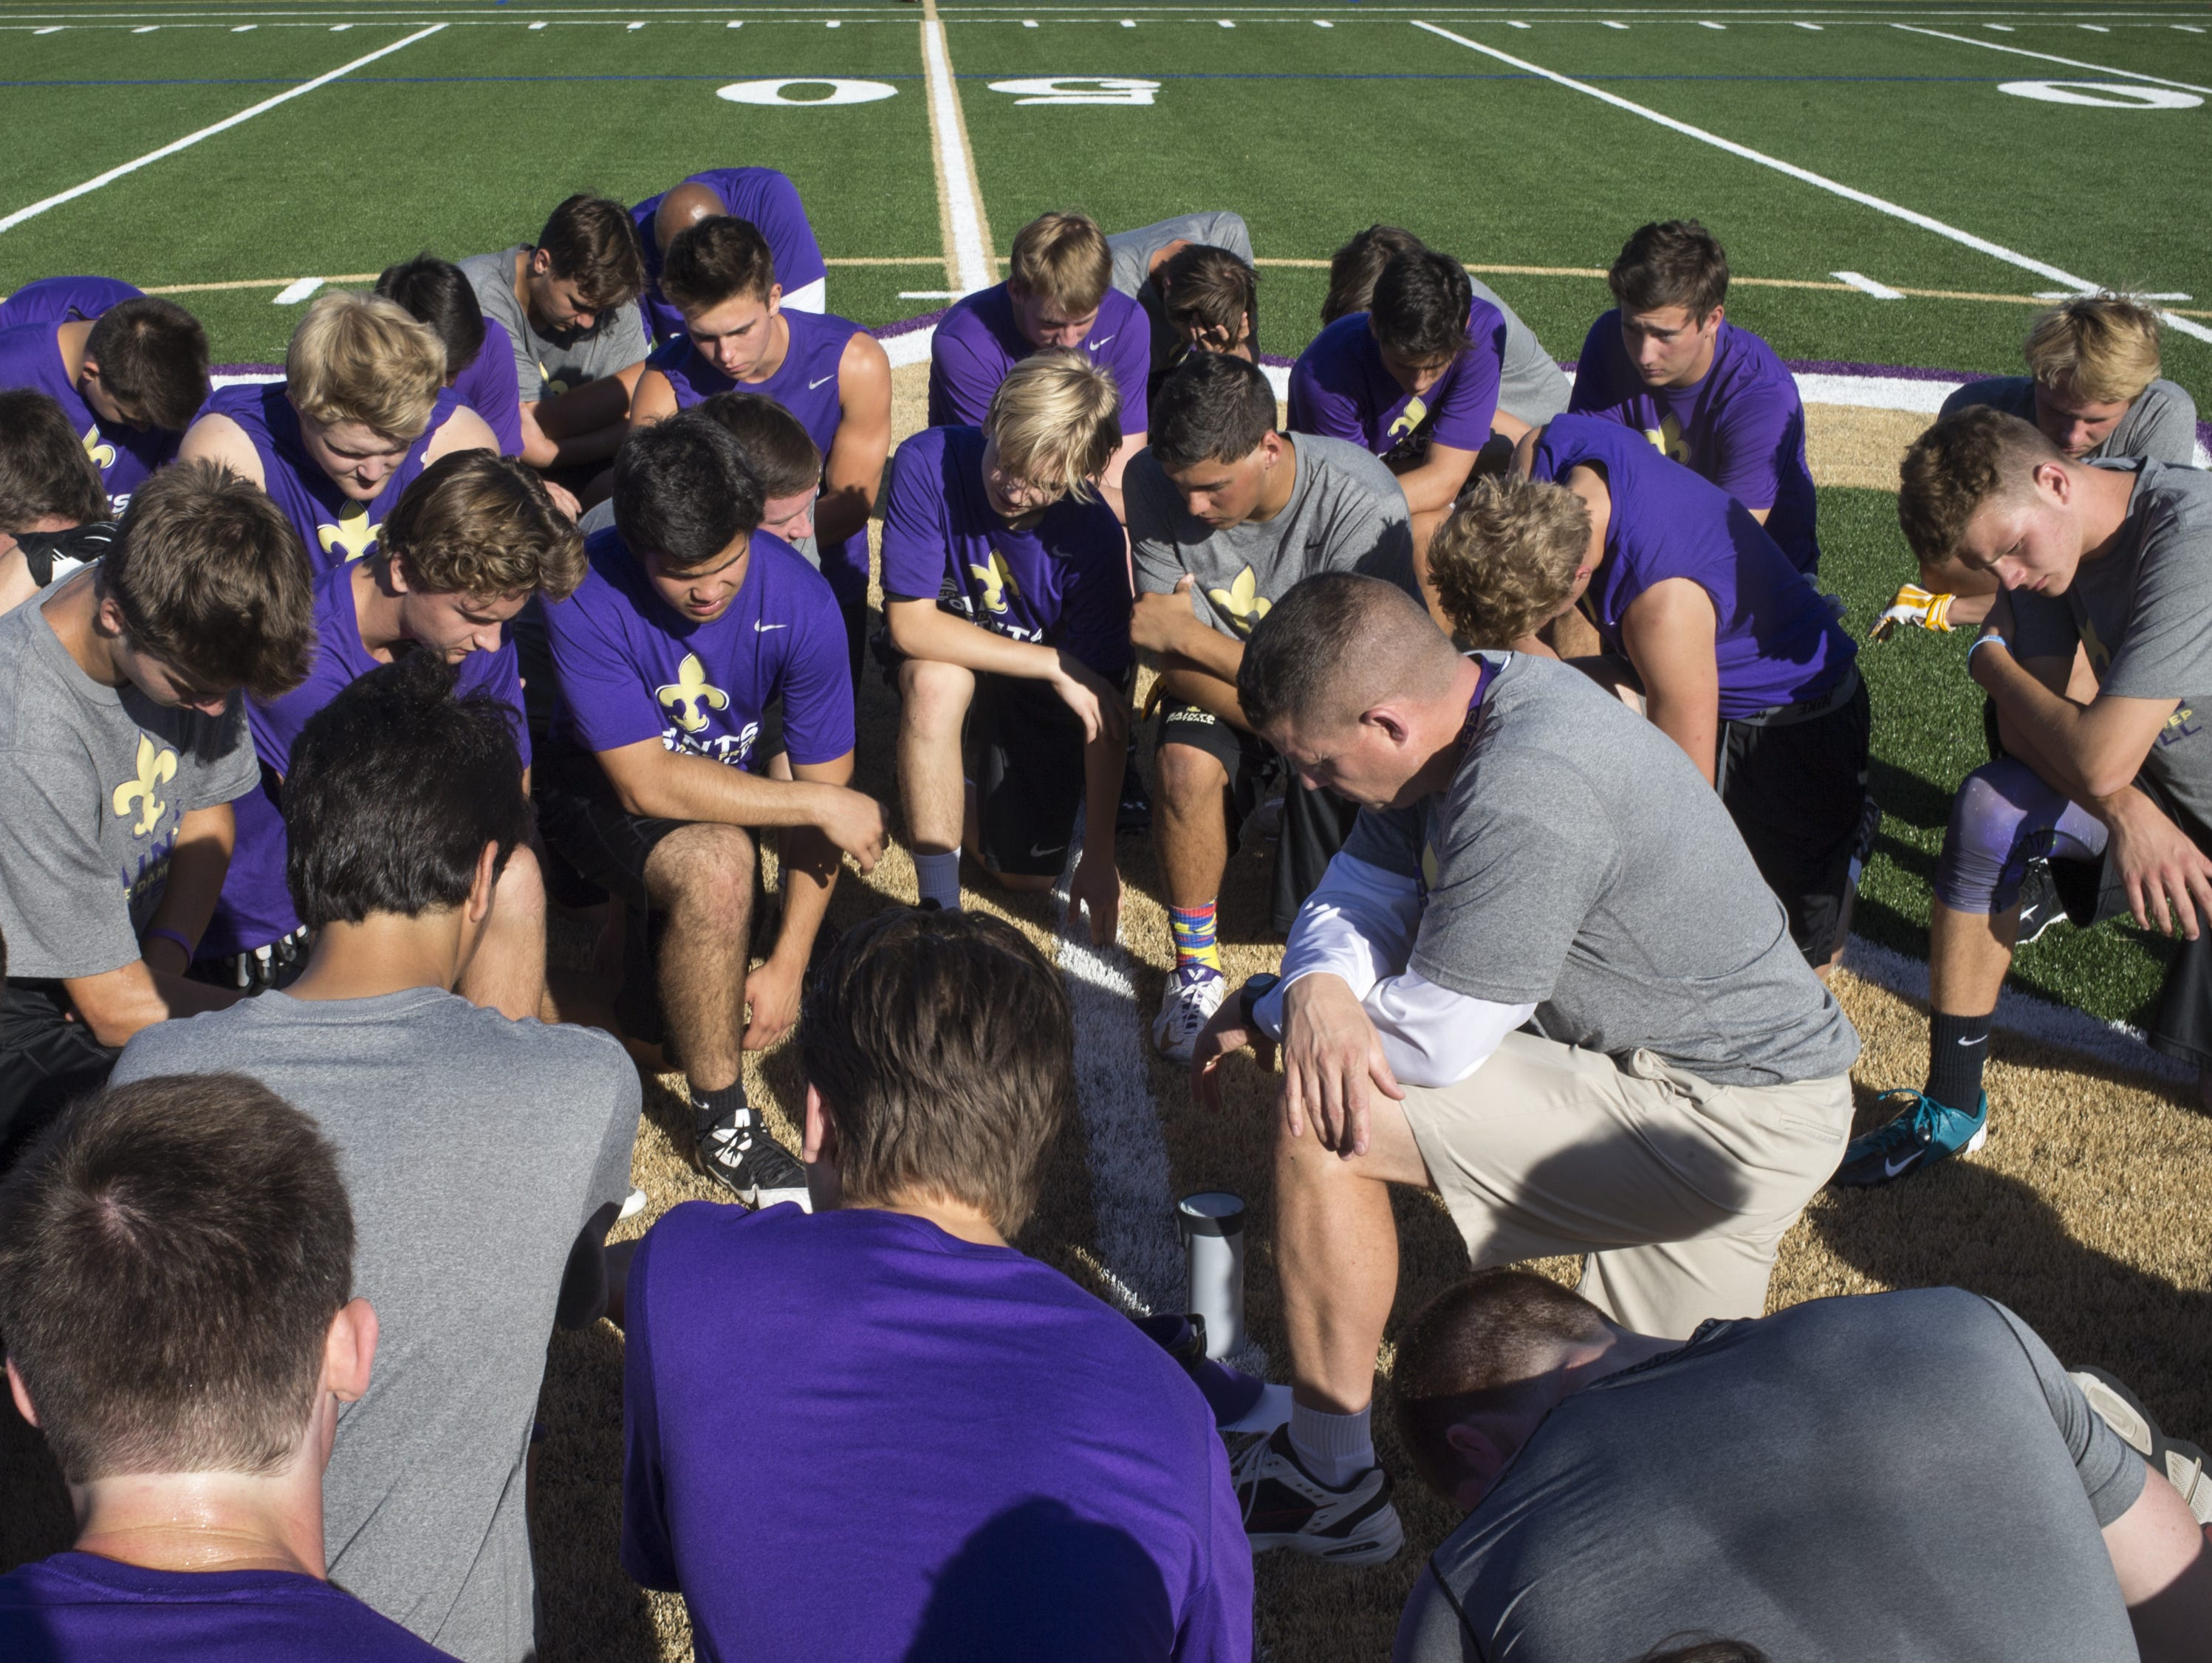 Notre Dame Preparatory High School football coach Mark Nolan prays with his team, May 28, 2015, after practice at Scot Bemis Field, 9701 E. Bell Road, Scottsdale.